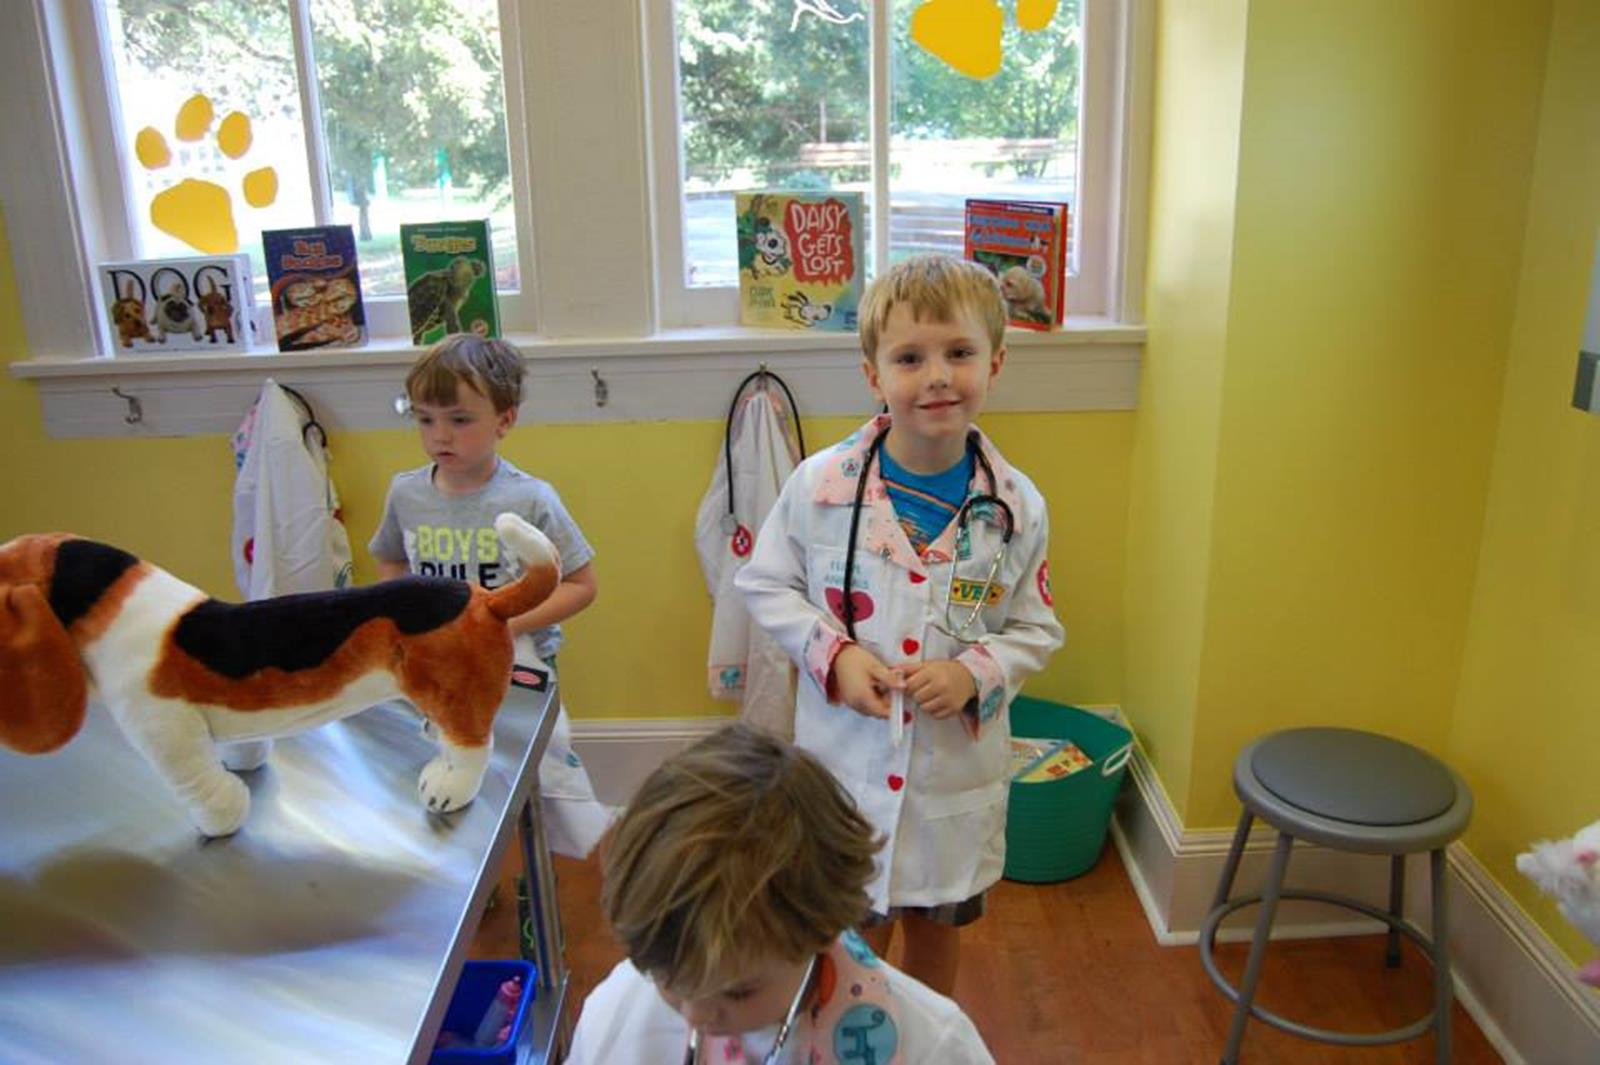 Students playing veterinarian at animal hospital exhibit. Credit: Lynn Meadows Discovery Center